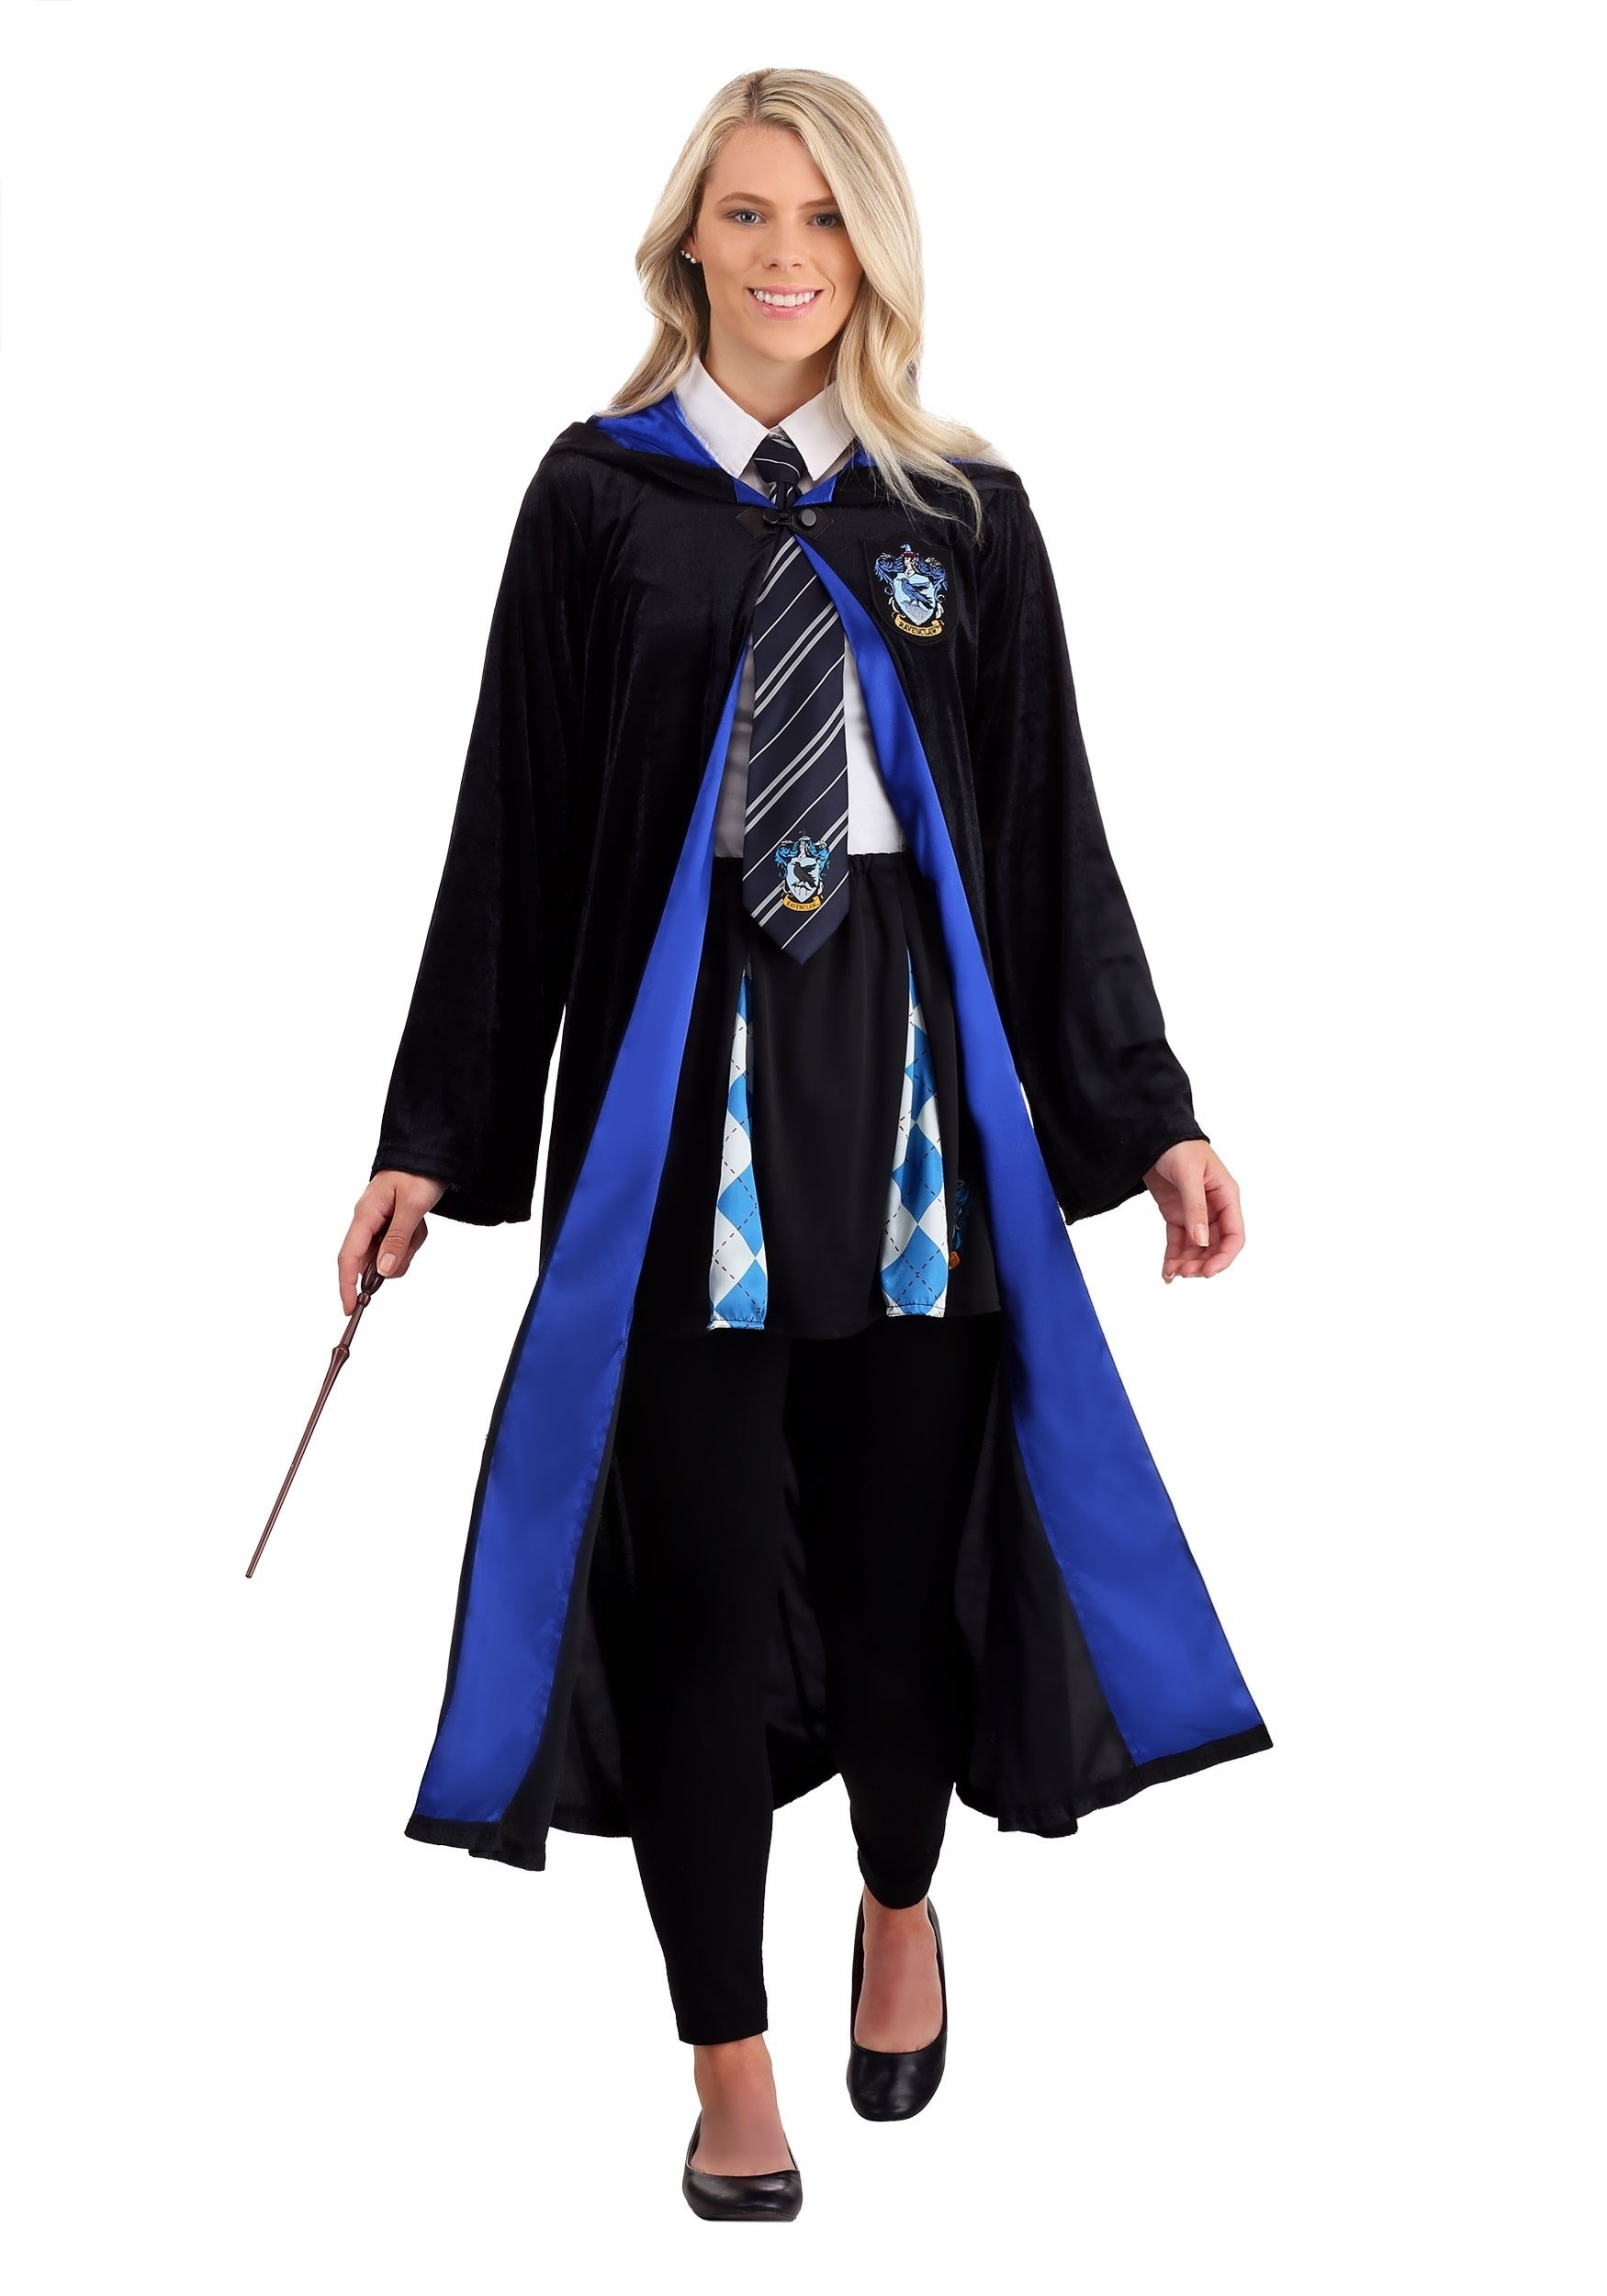 Harry Potter Deluxe Ravenclaw Robe for Adults